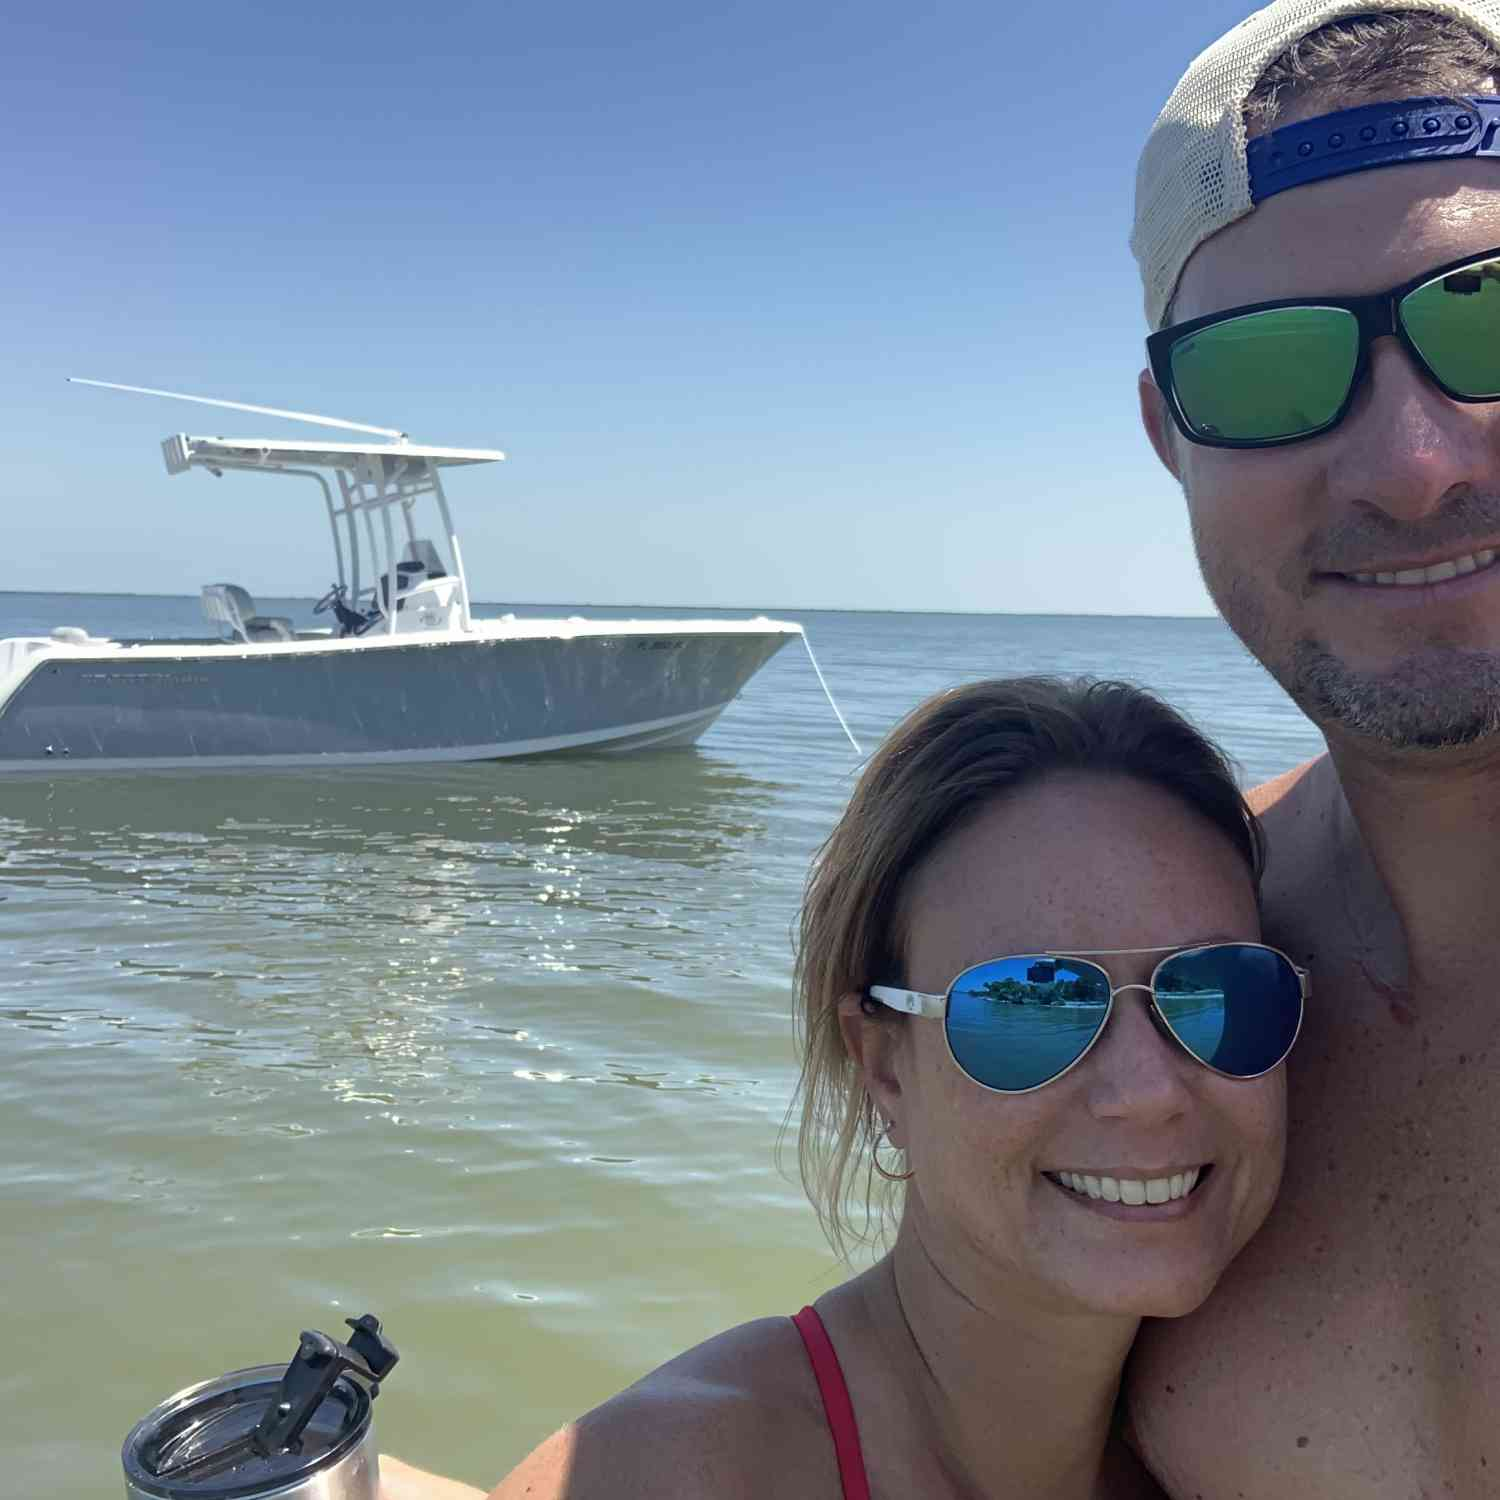 Title: True Love! - On board their Sportsman Open 232 Center Console - Location: Mosquito Lagoon, FL. Participating in the Photo Contest #SportsmanDecember2019